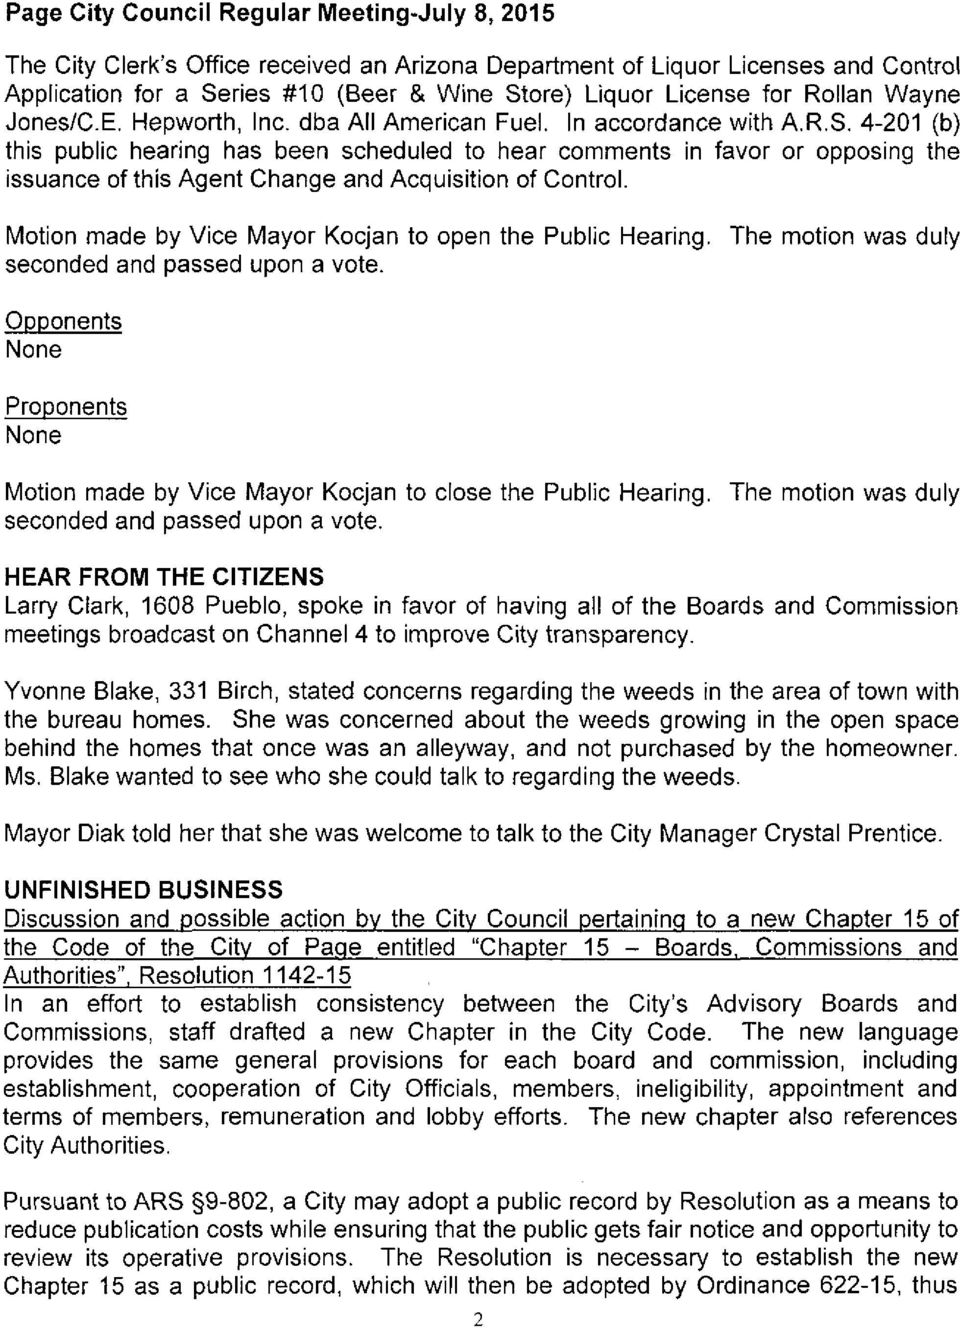 favor or opposing the Motion made by Vice Mayor Kocjan to open the Public Hearing. The motion was duly seconded and passed upon a vote.